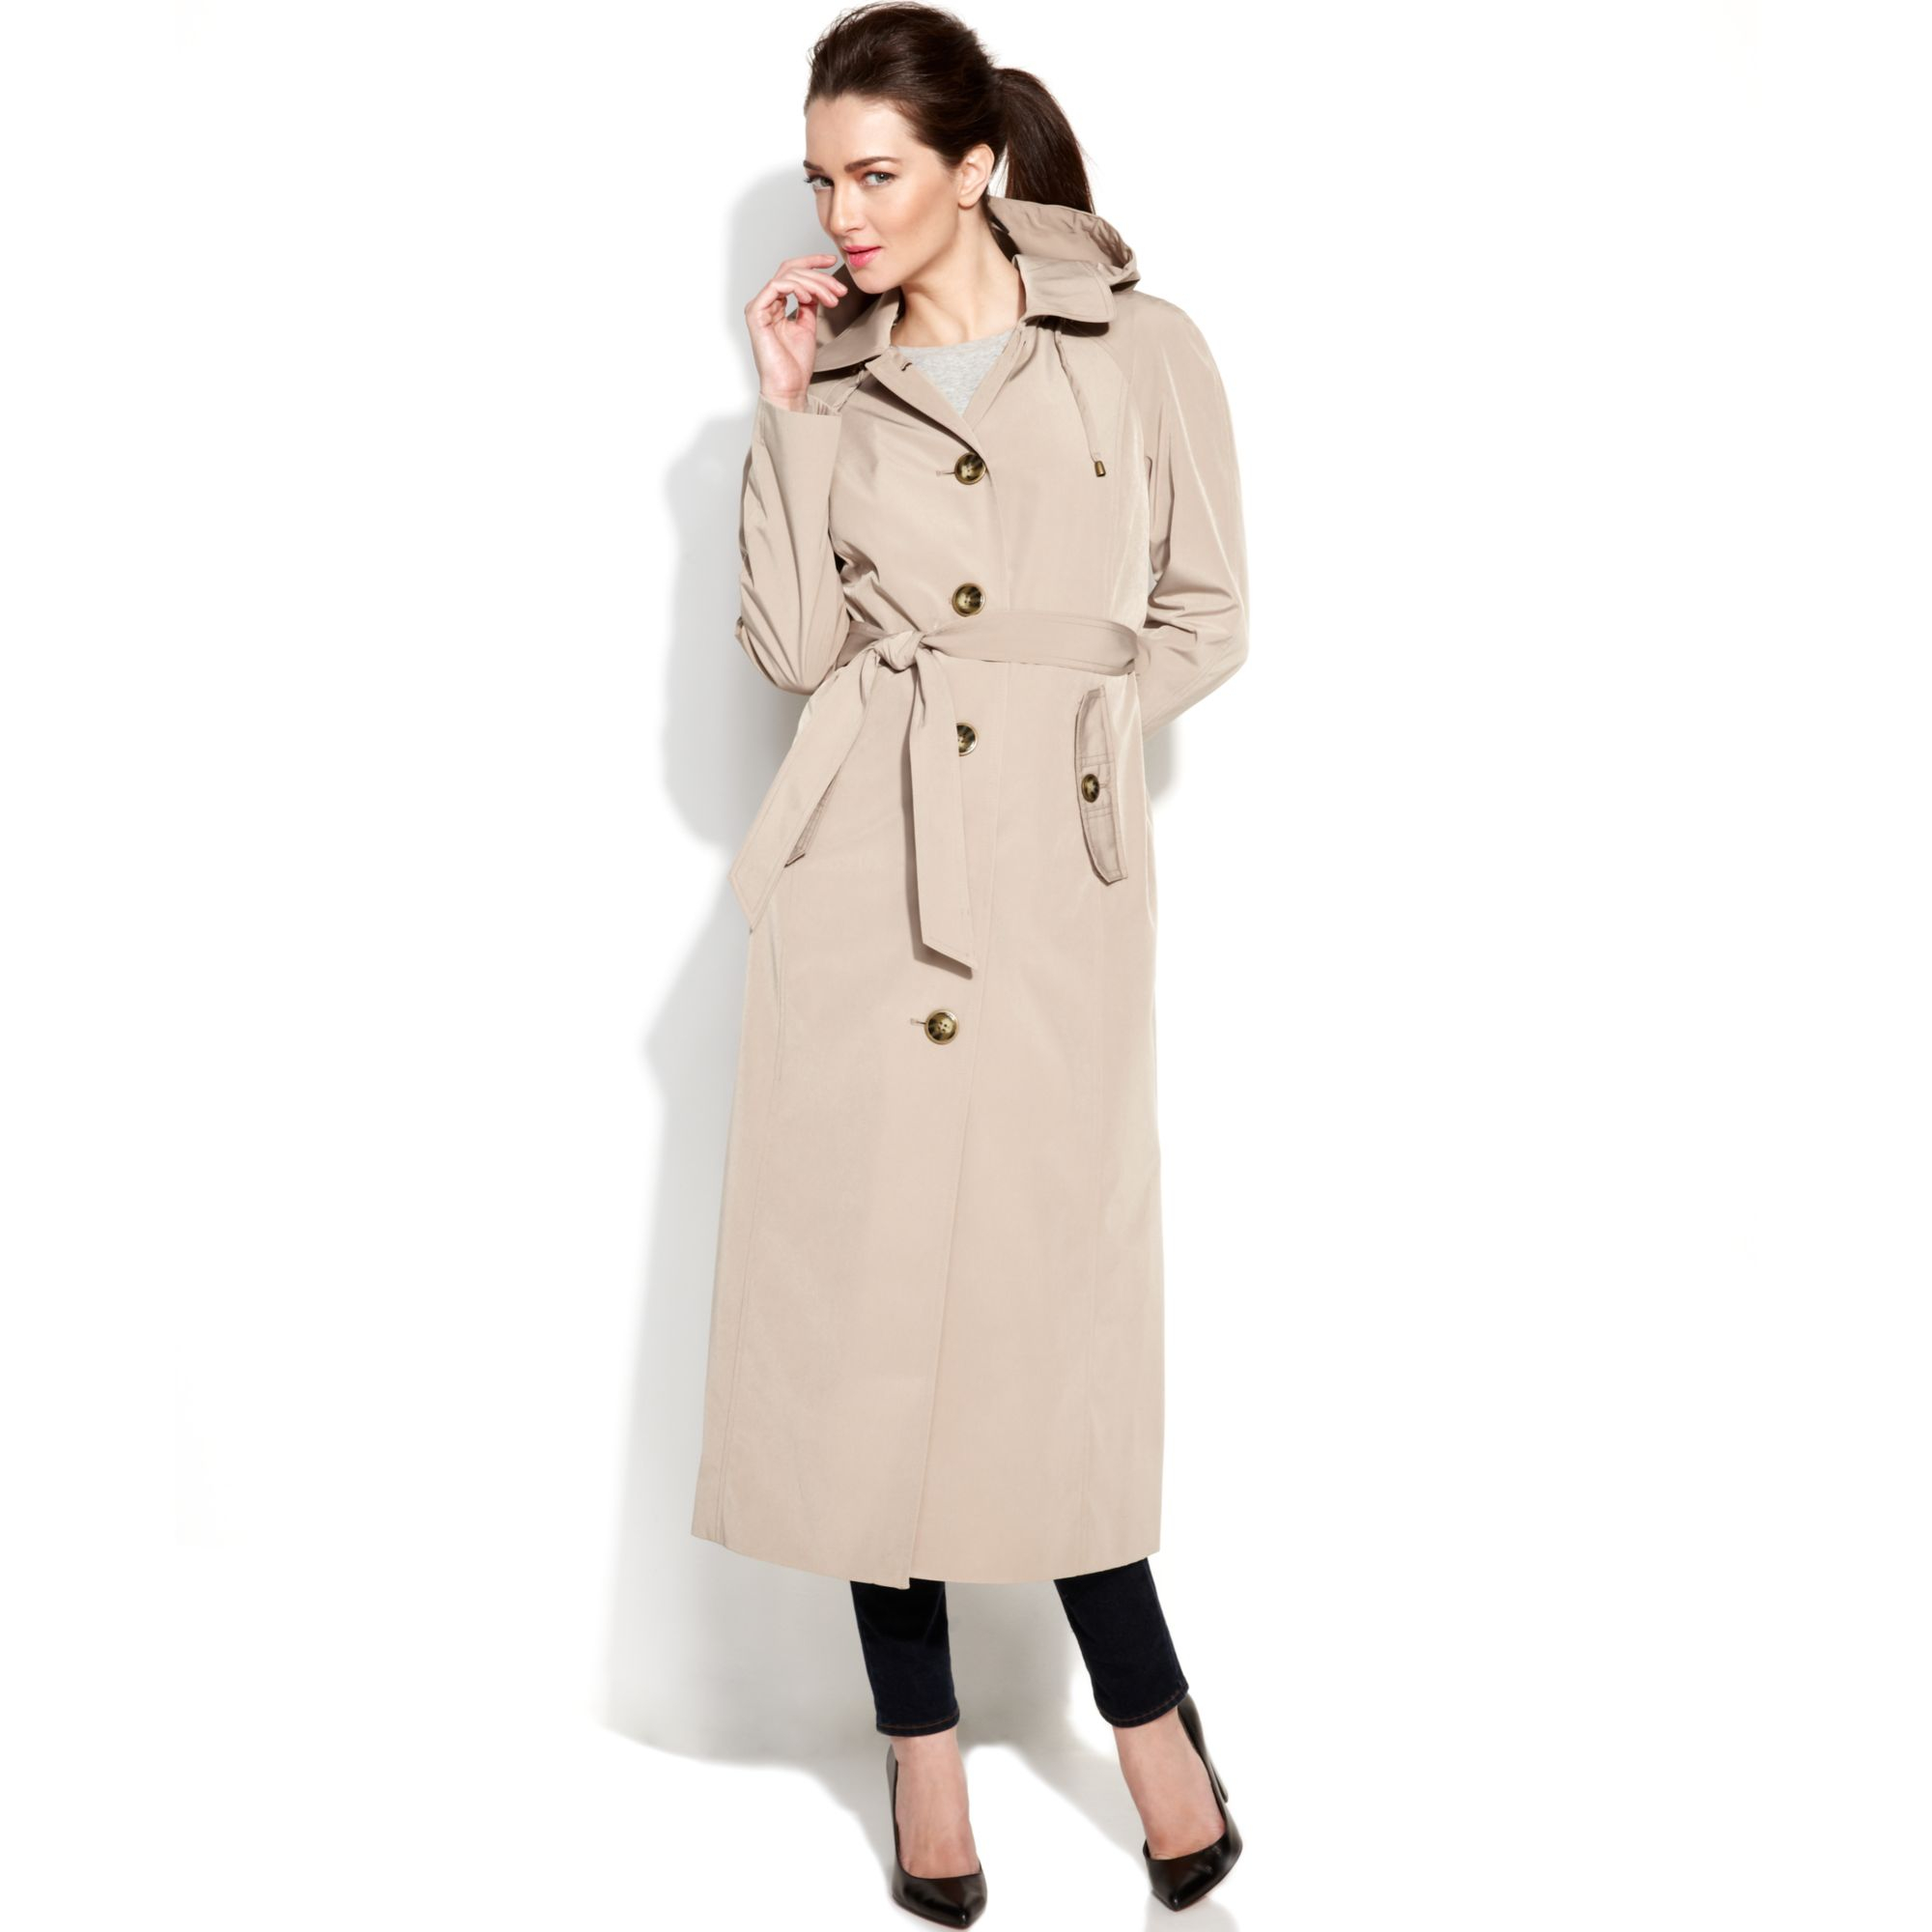 ce2563ba4 London Fog Natural Hooded Singlebreasted Maxi Trench Coat